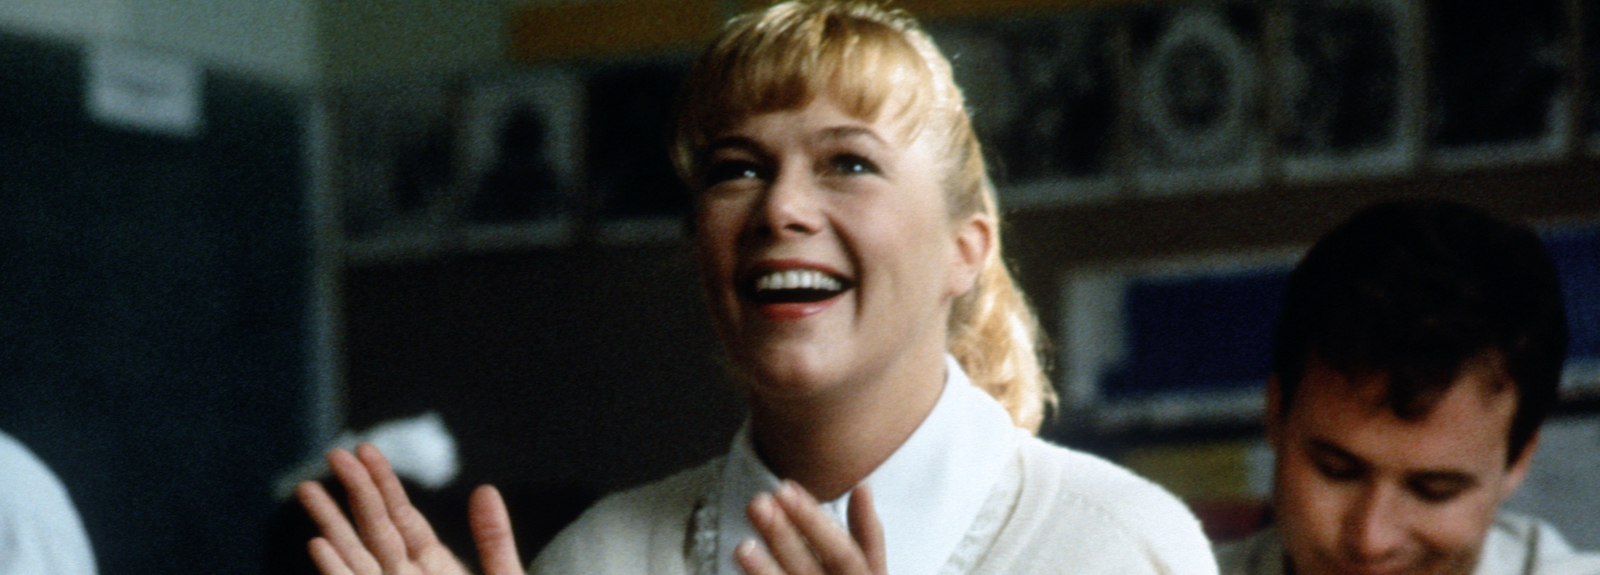 Kathleen Turner in Peggy Sue Got Married